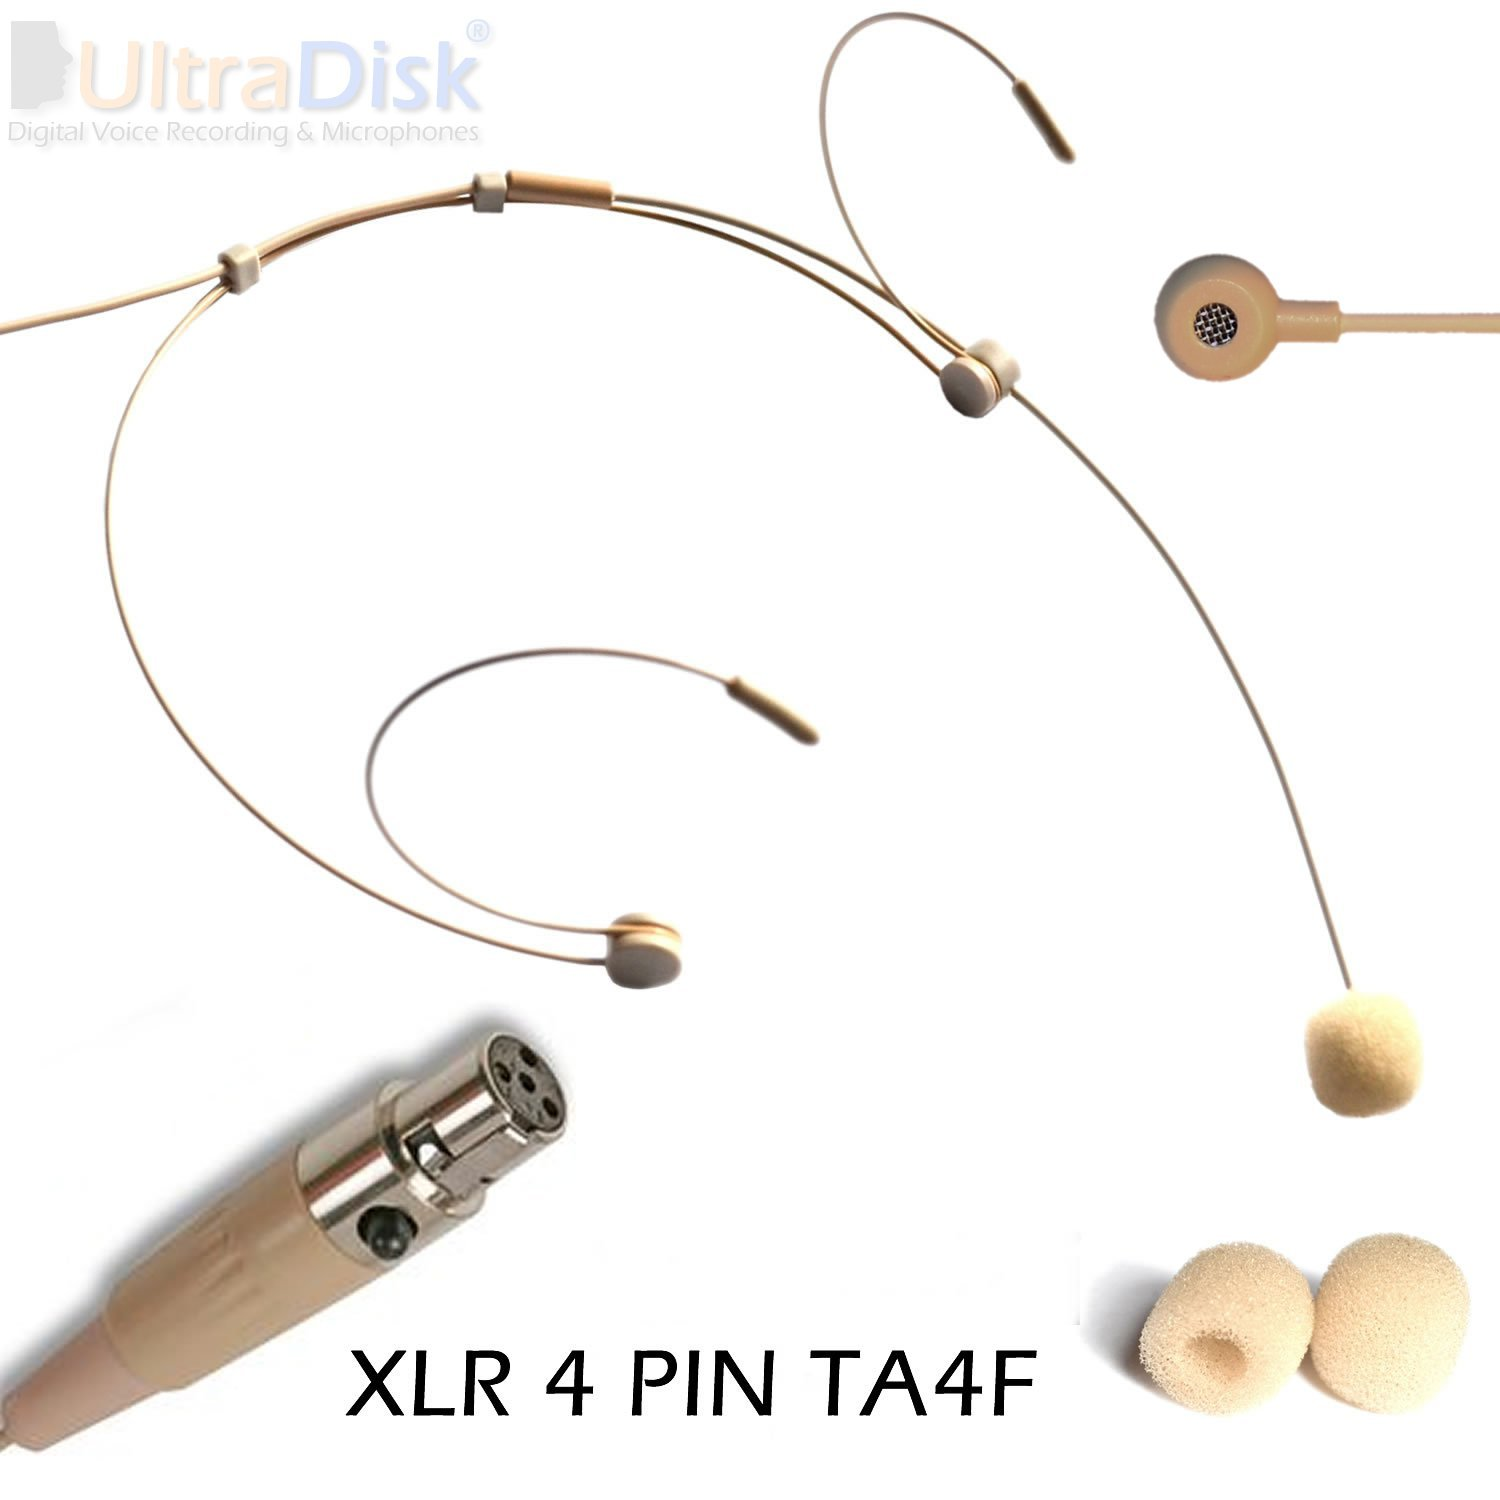 61vWRucy%2B8L._SL1500_ headworn skin microphone 4 pin mini xlr ta4f wireless body ta4f to xlr wiring diagram at bakdesigns.co